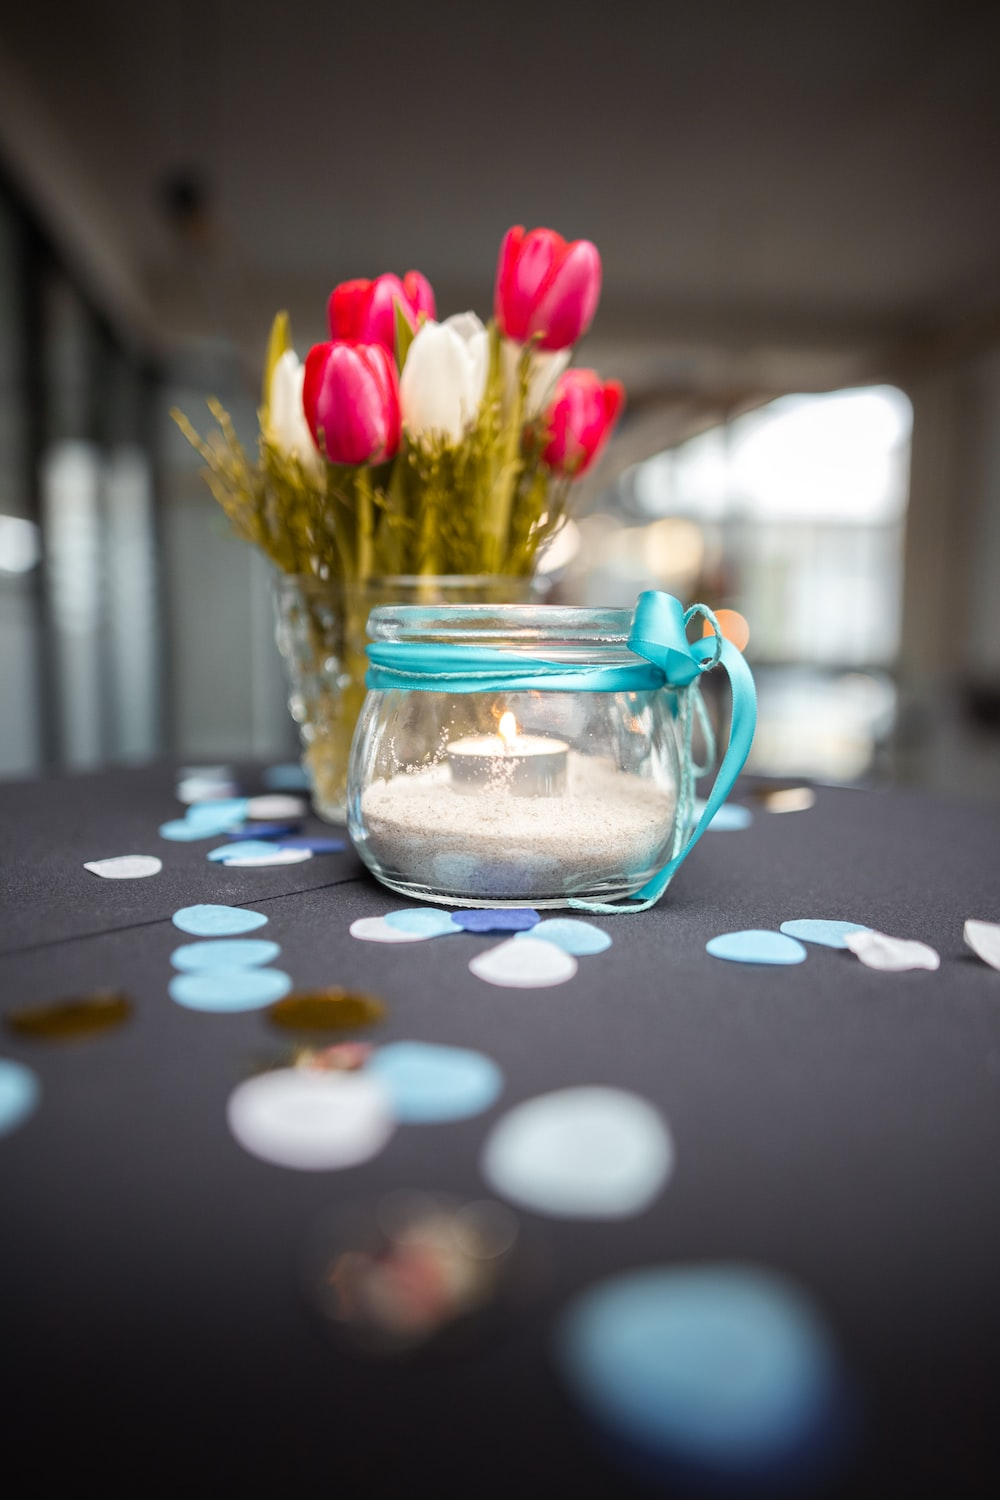 pink tulips in clear glass jar